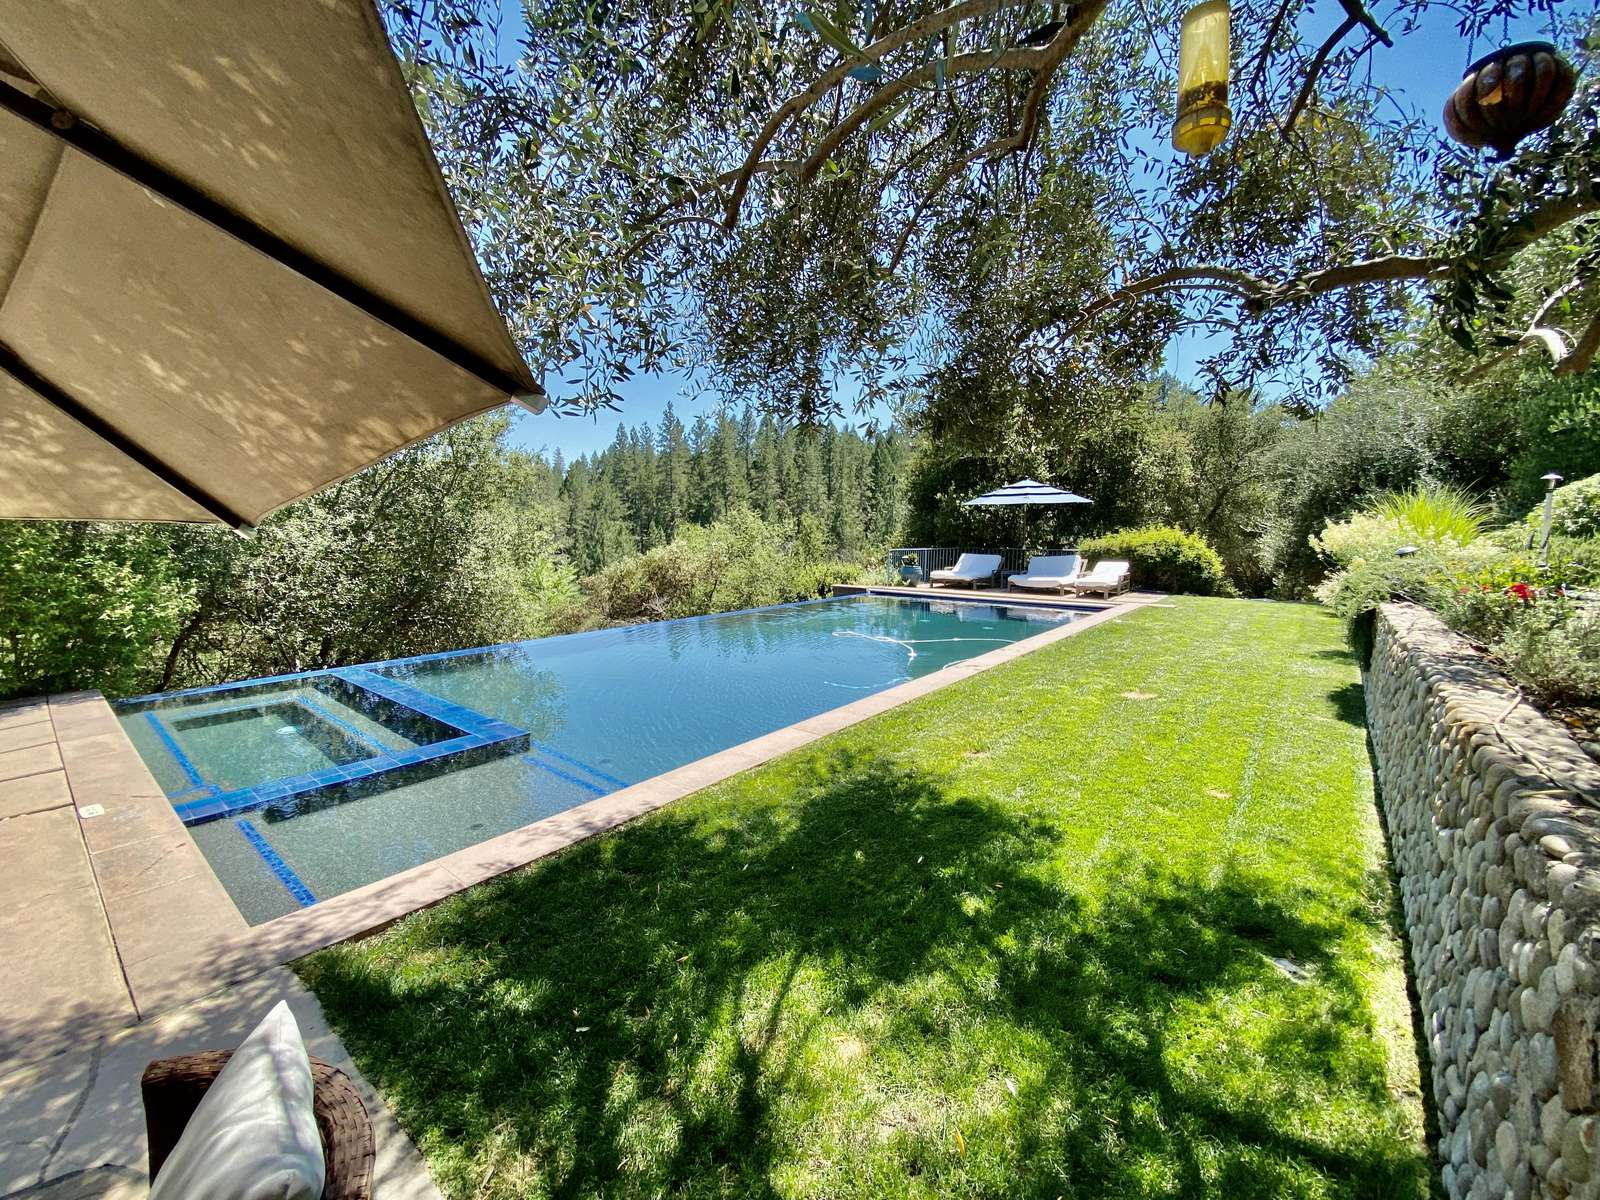 Green grass surrounding large heated pool